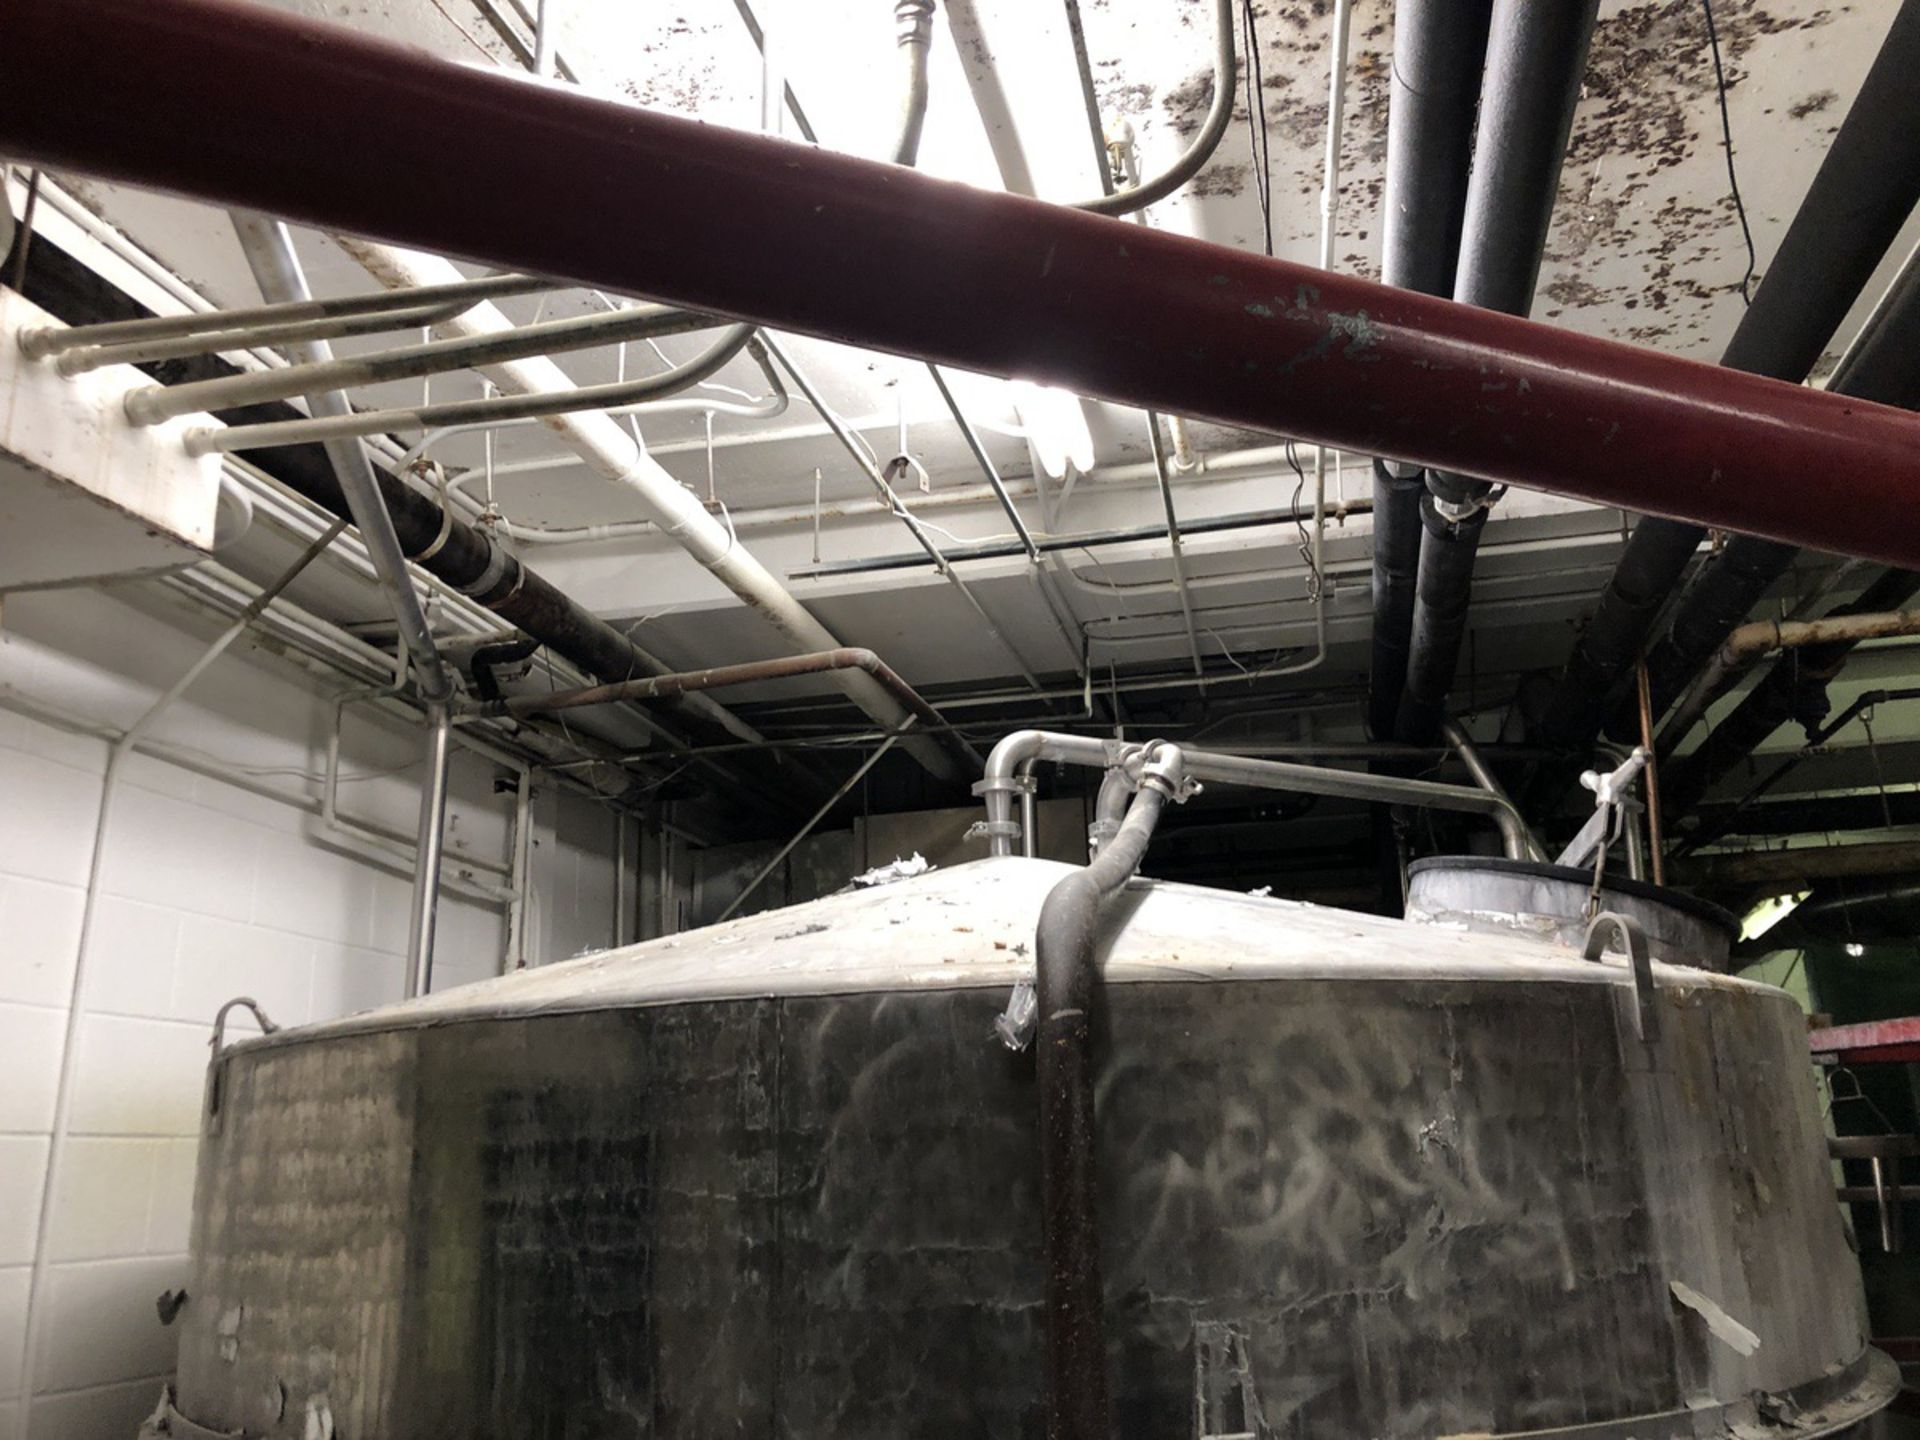 Lot 24 - 50 BBL Whirlpool Tank, Cone Top, Flat Bottom, Steel Frame, Stainless Steel, Approx   Rig Fee: $1400